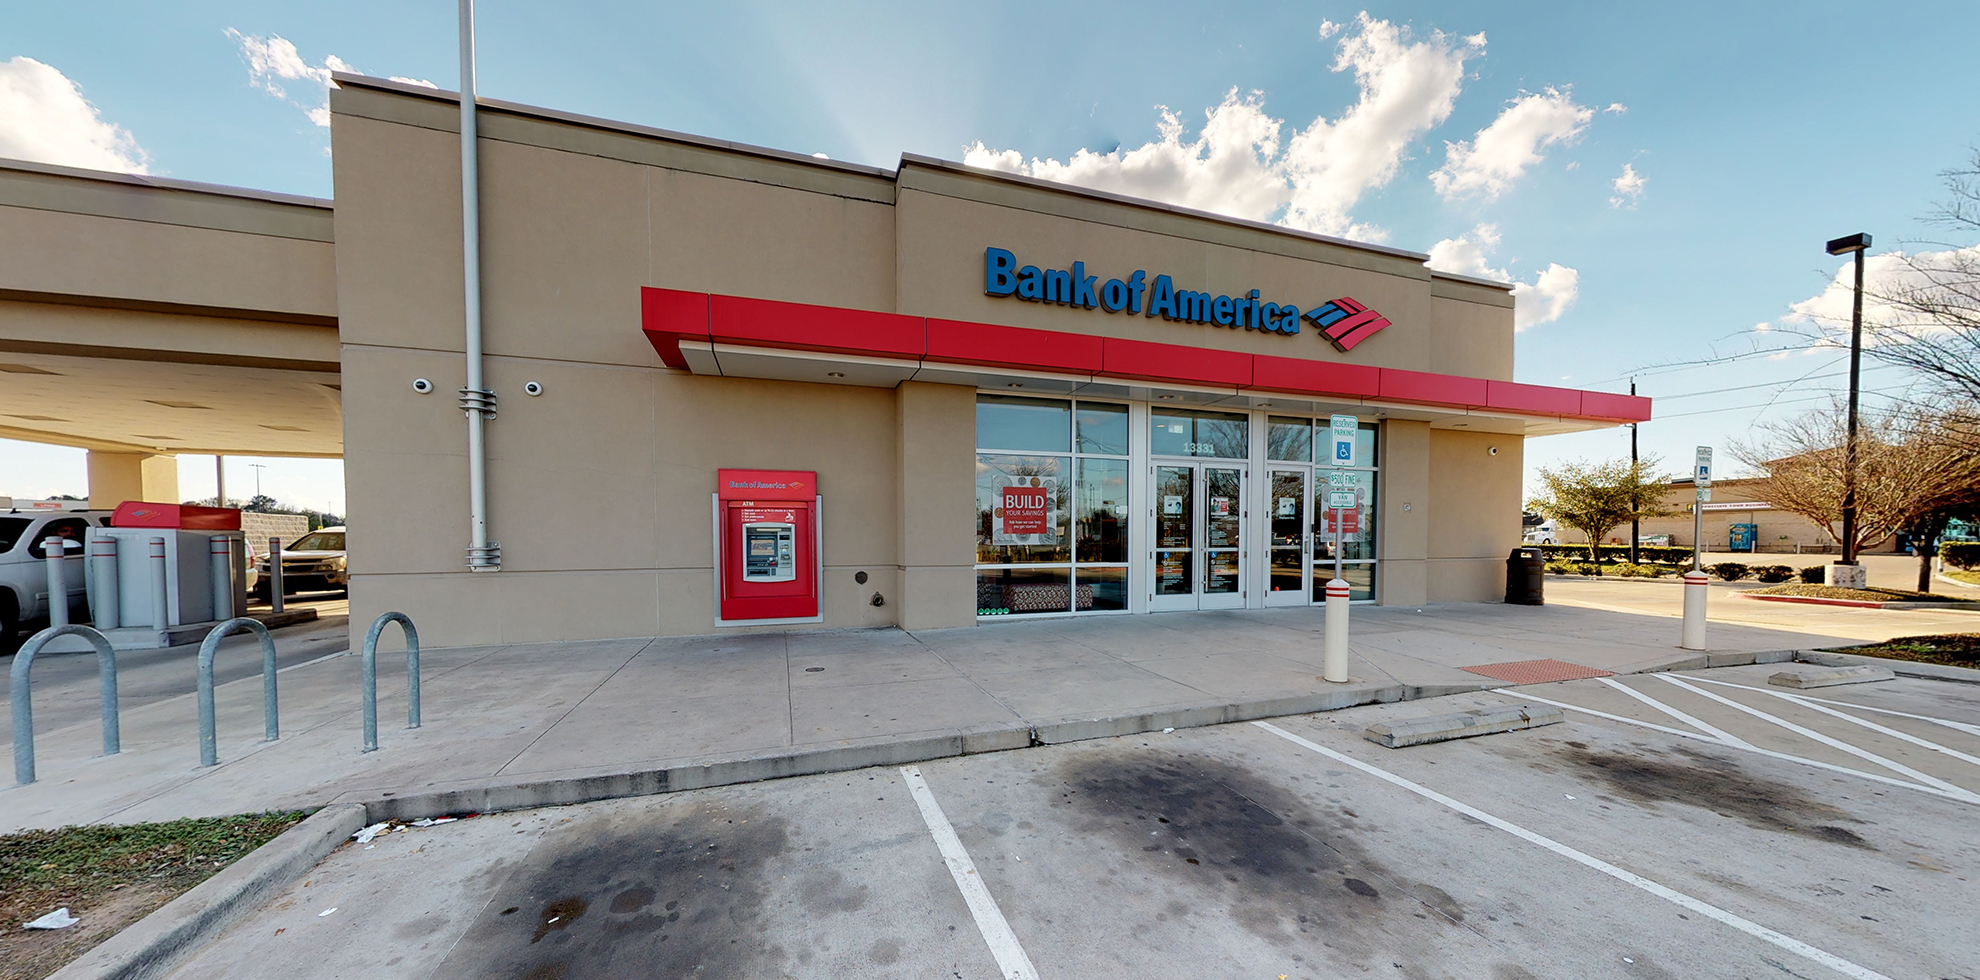 Bank of America financial center with drive-thru ATM | 13331 State Highway 249, Houston, TX 77086